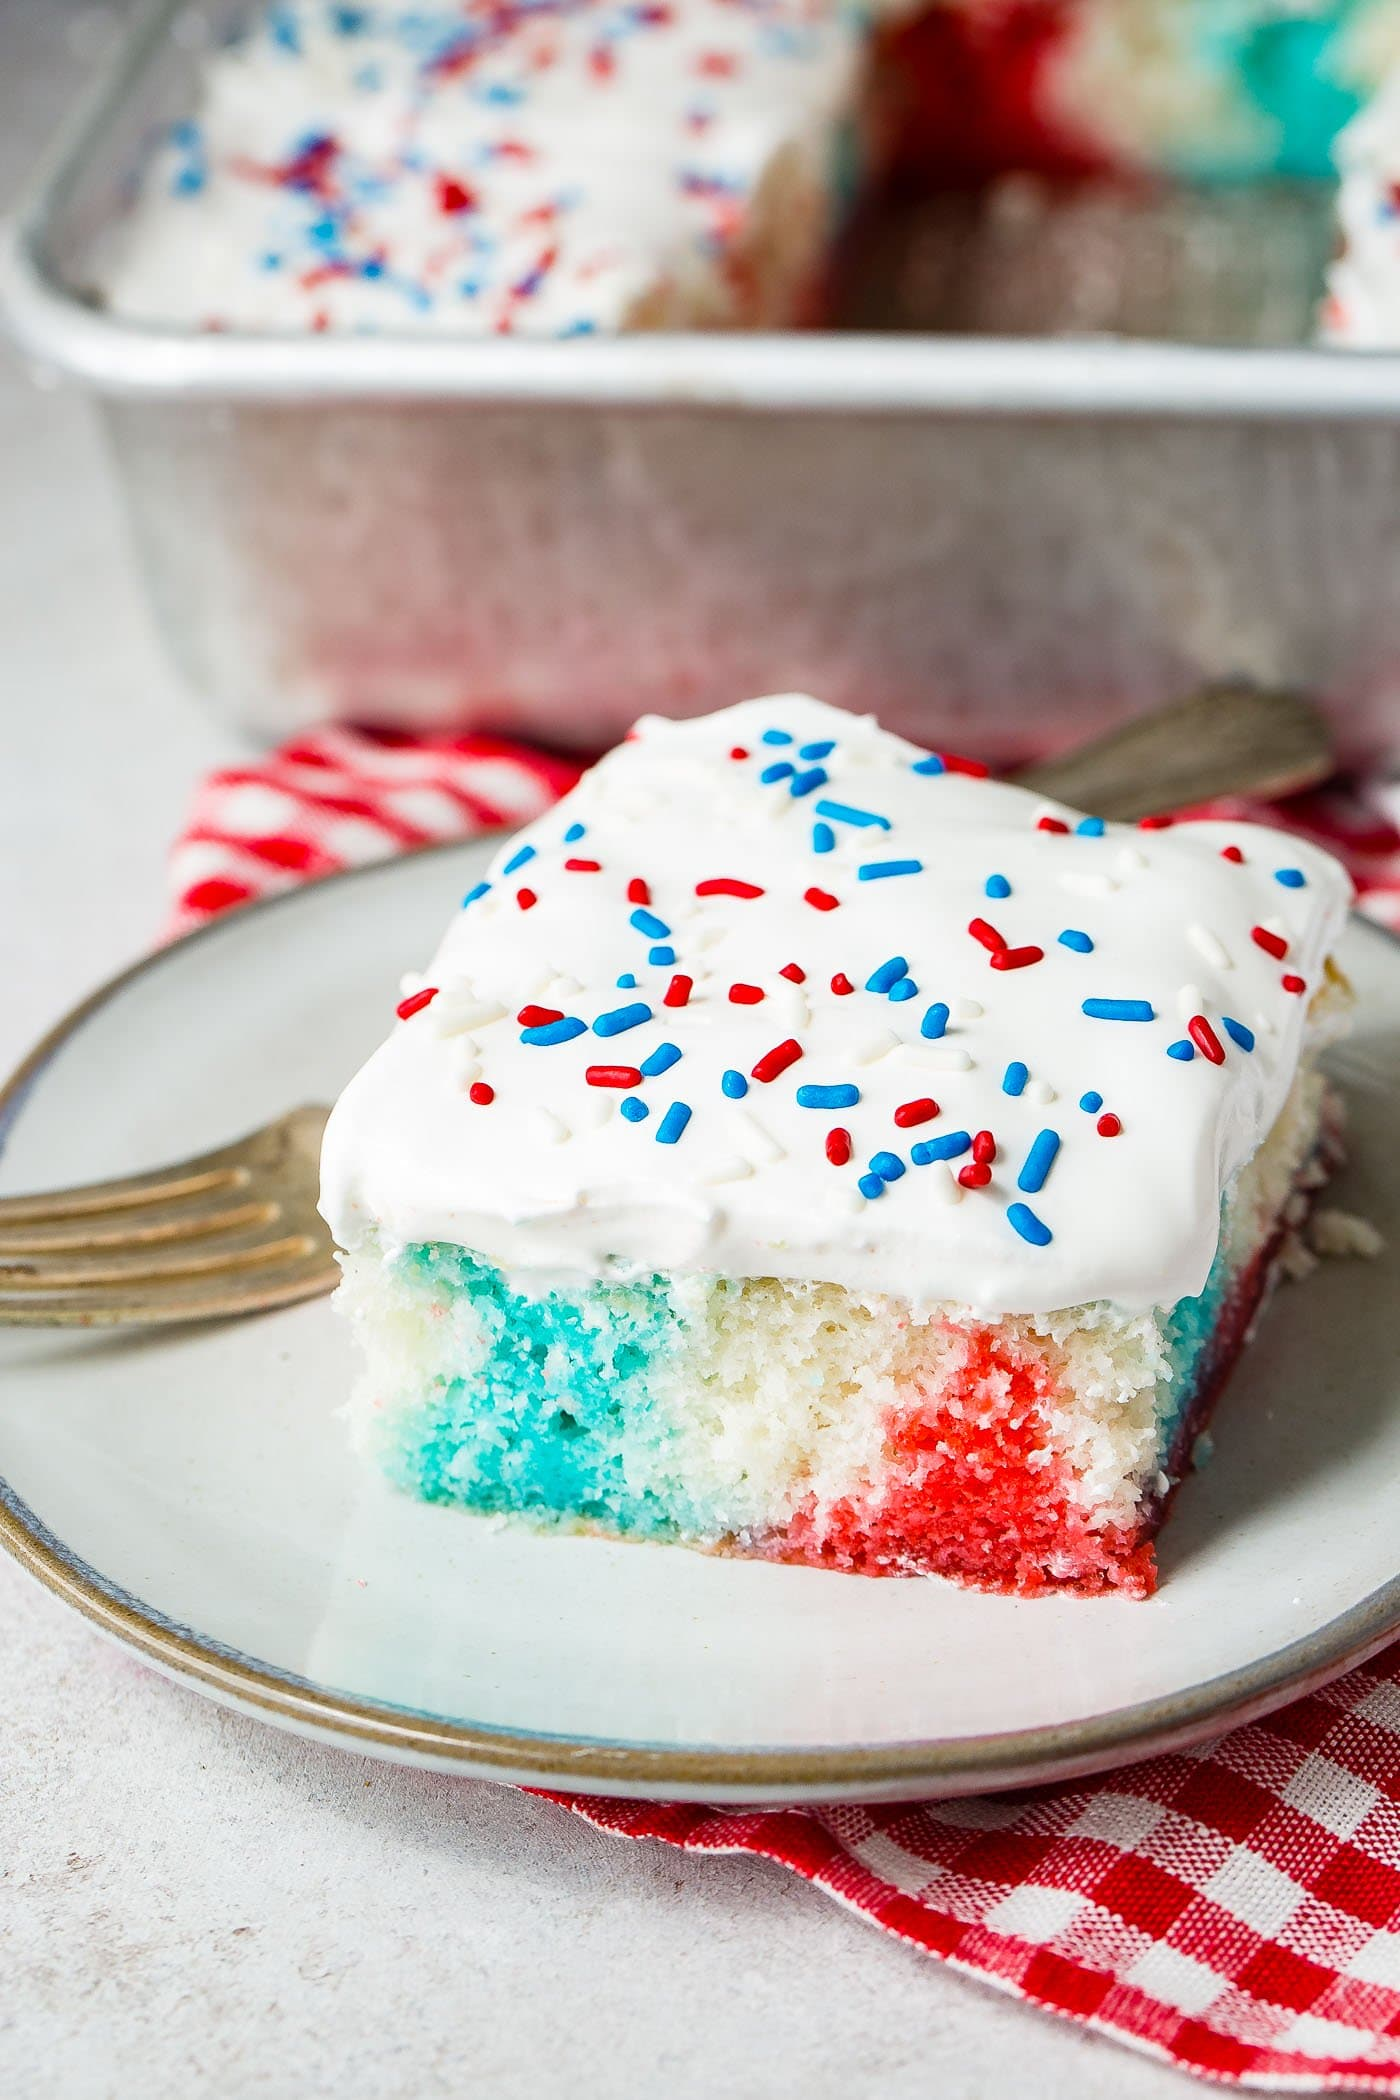 A piece of red, white and blue poke cake on a white dessert plate with a fork resting next to the cake. There is a red and white checkered napkin in the background.